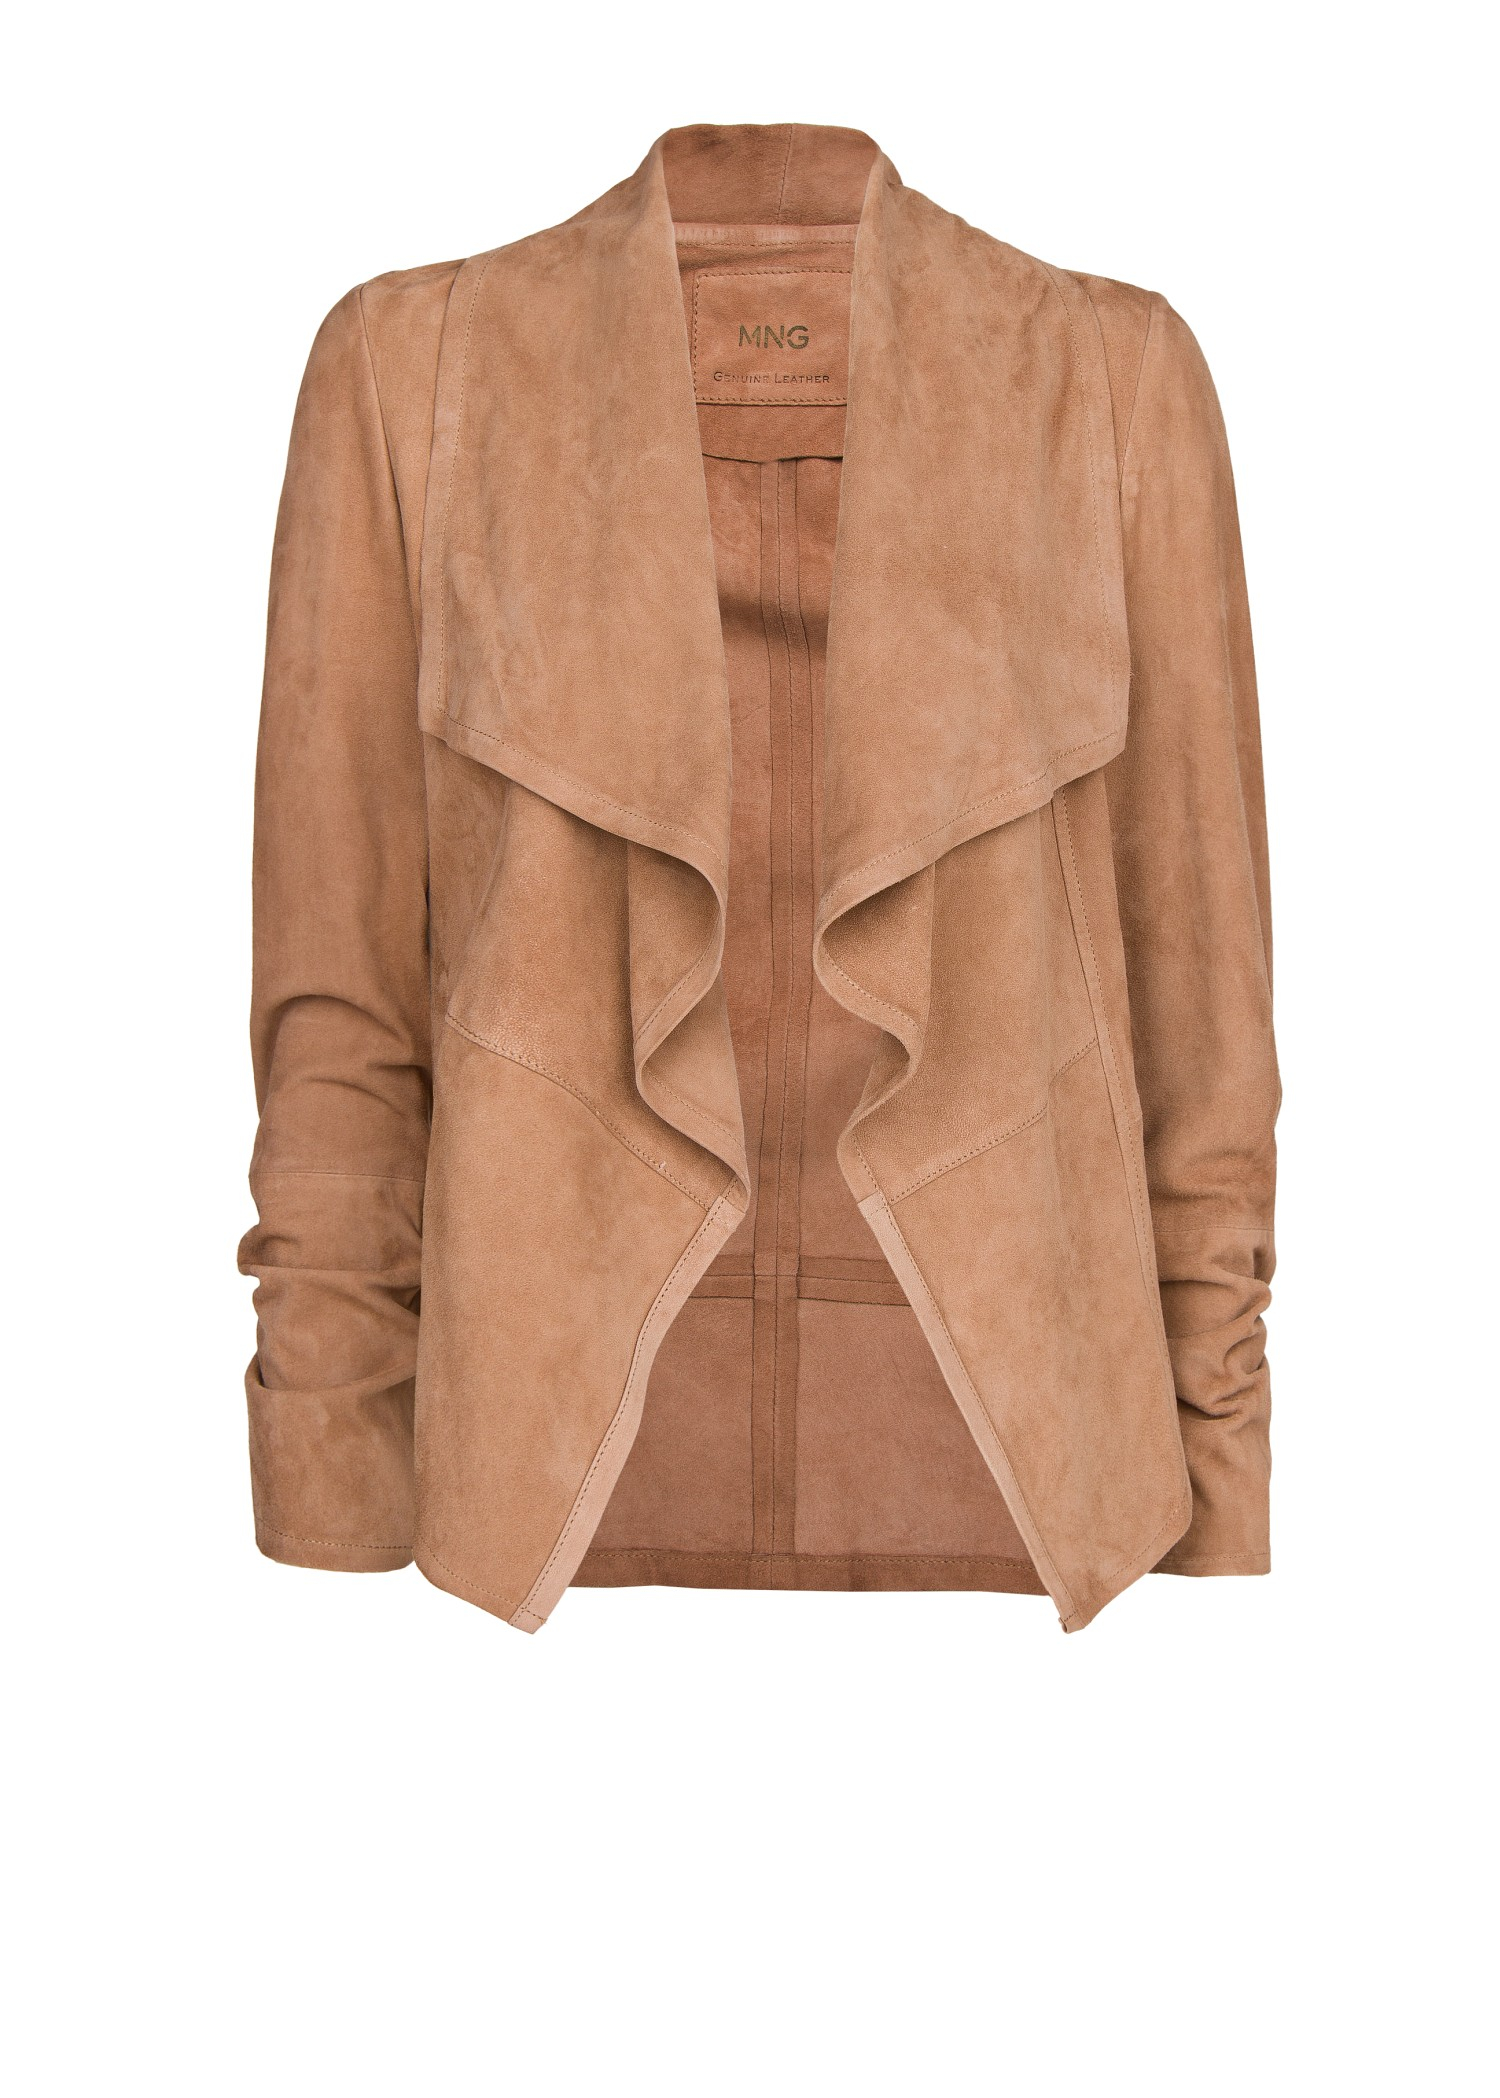 Mossimo Supply Co. Womens Size Medium,TAN SUEDE JACKET, BLAZER, Genuine Leather. $ 0 Bids or Buy It Now 1d 9h. See Details. Genuine Suede Liz Claiborne Tan Beige Leather Jacket Size 8 Collared Blazer. $ Buy It Now 1d 16h. See Details.